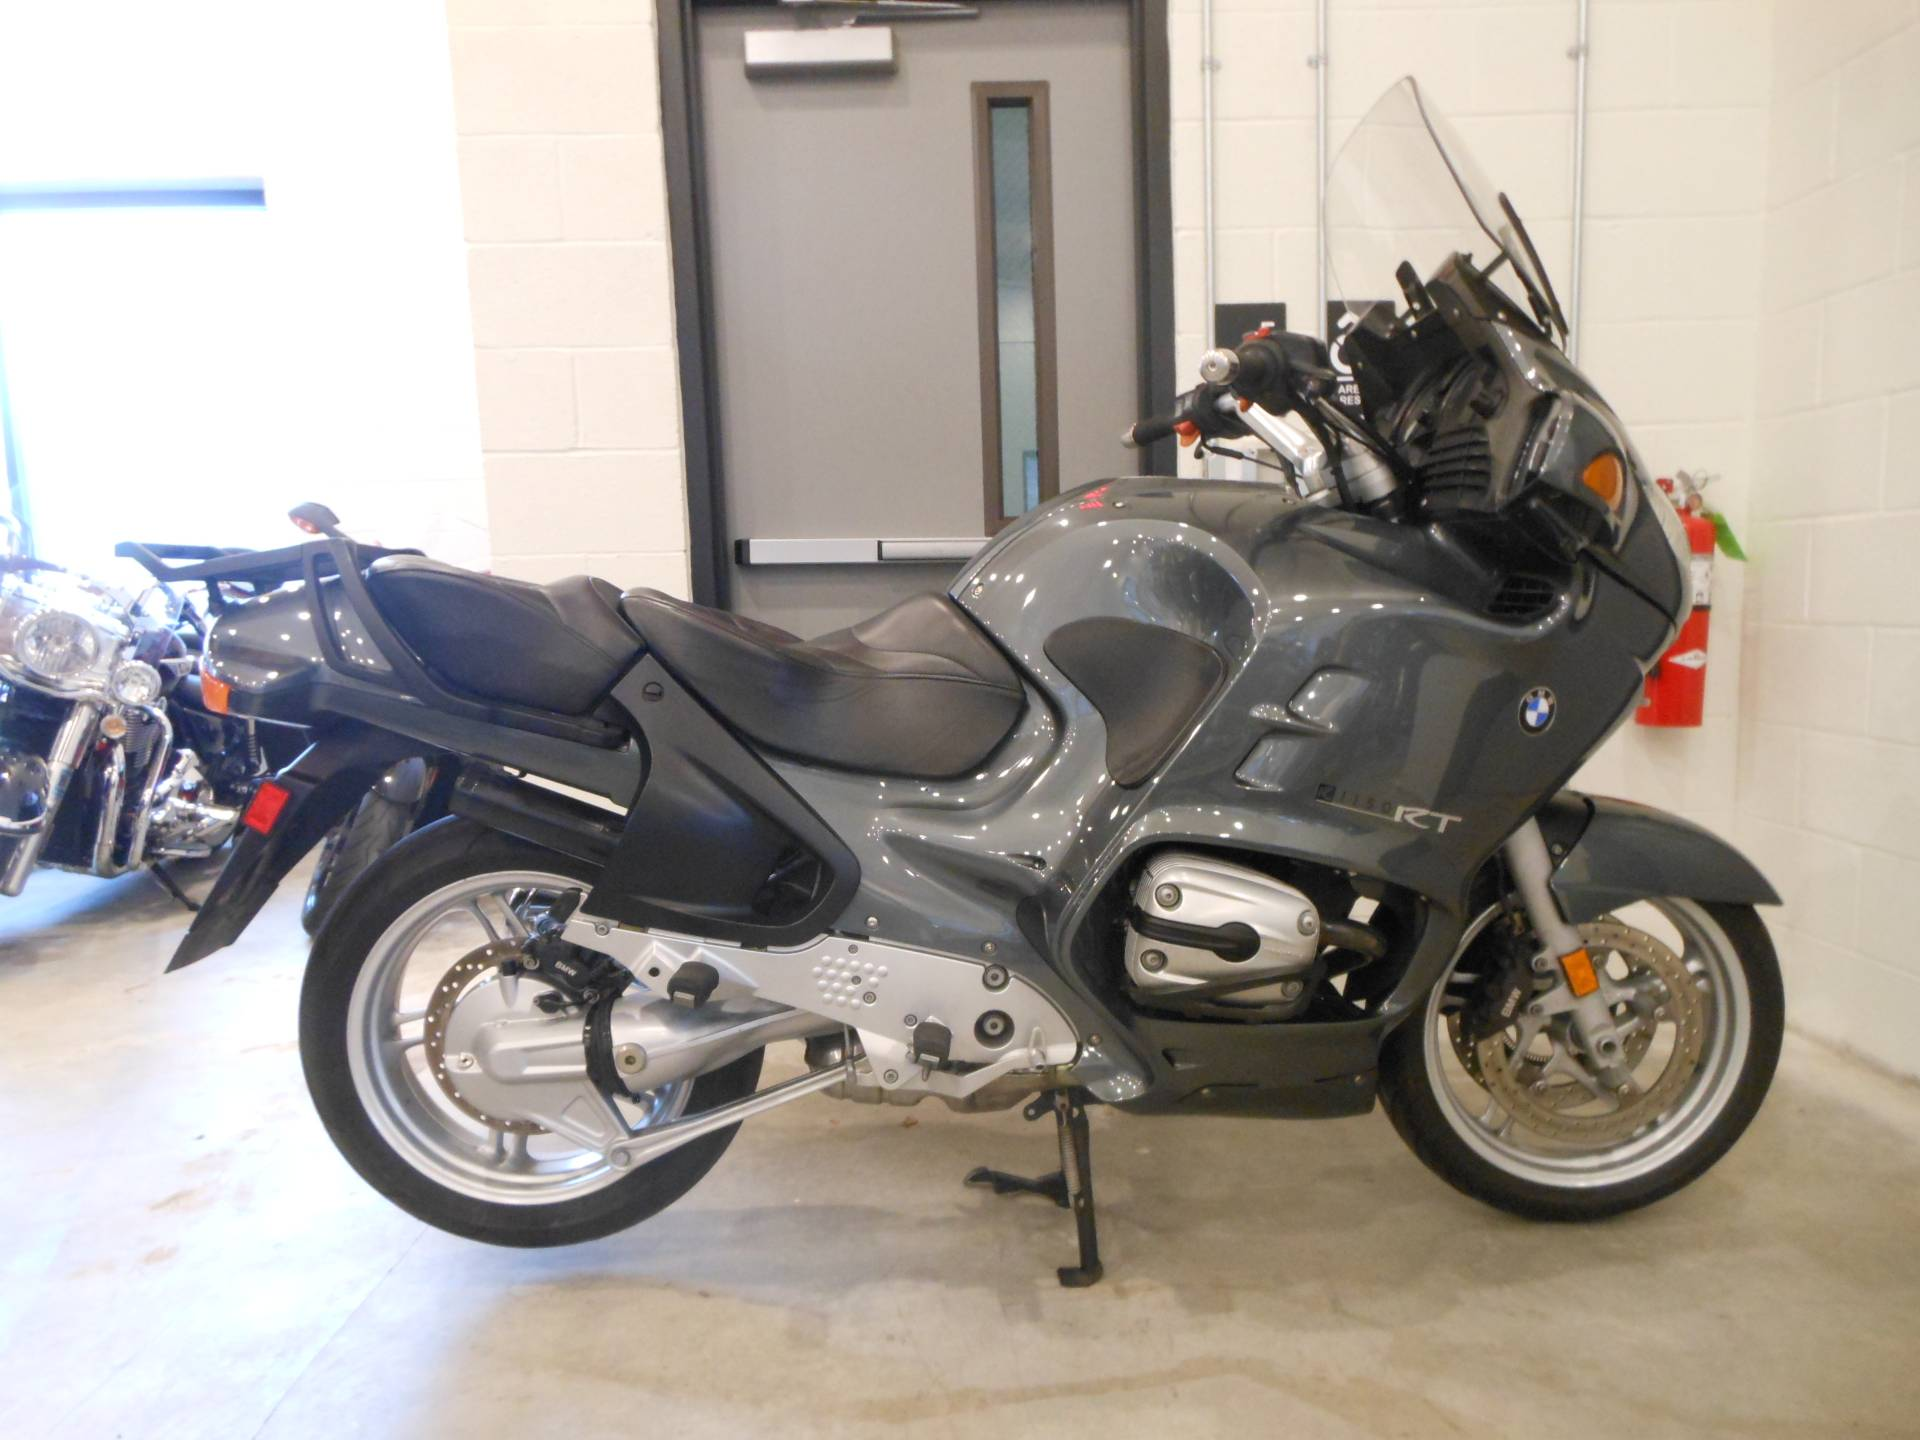 2004 BMW R 1150 RT (ABS) in Port Clinton, Pennsylvania - Photo 1